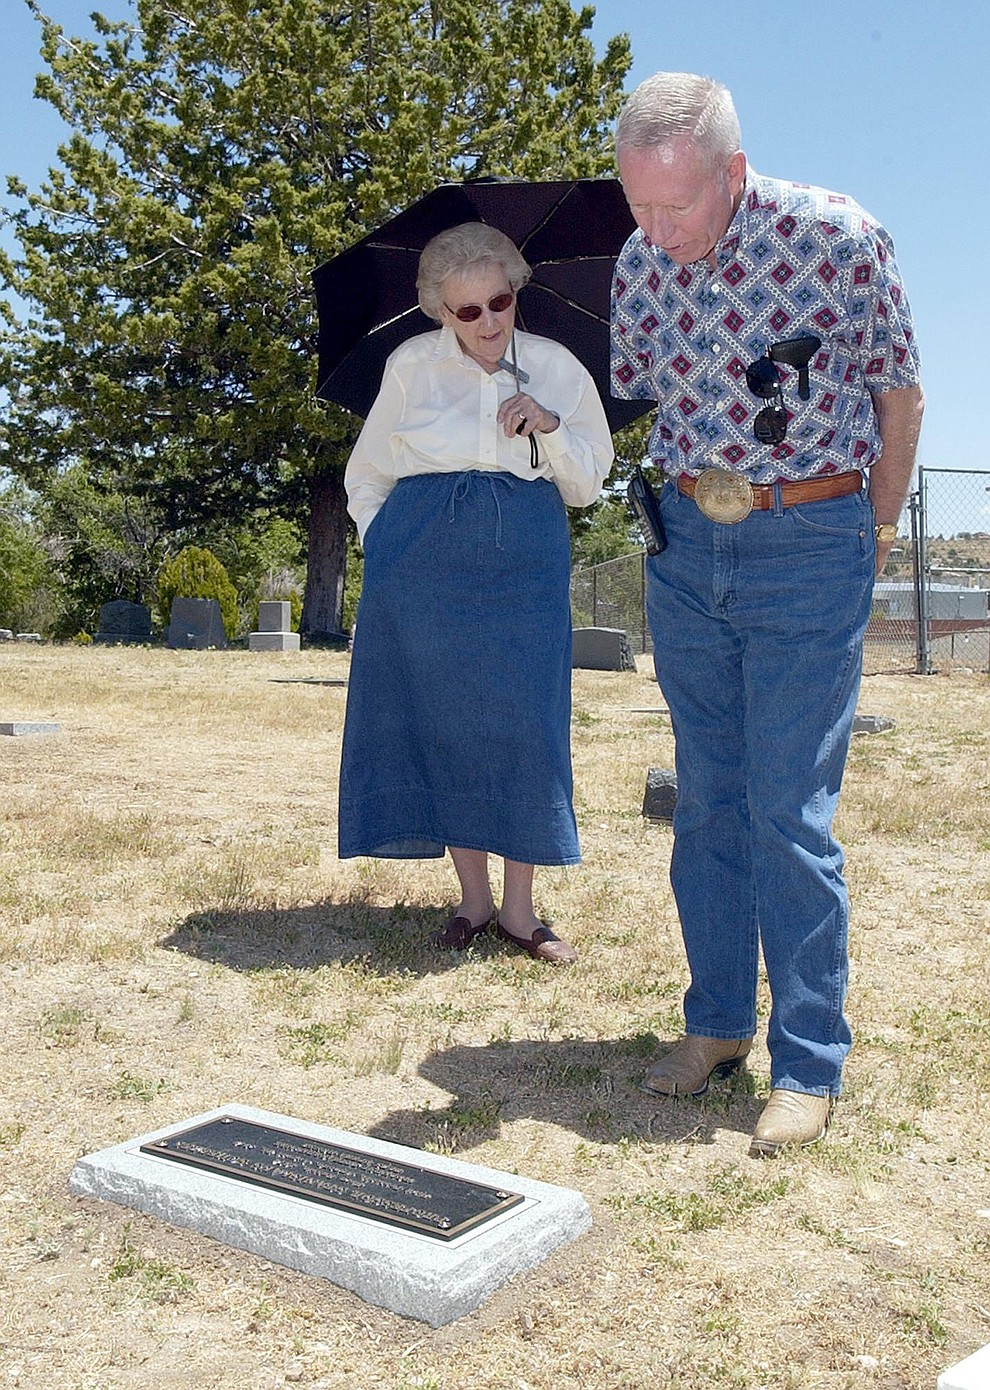 Elisabeth Ruffner, left, and George Goodwin stand over the previously unmarked grave of Professor Stanislaus Scherzel in this file photo from June 2005 in Prescott.  Scherzel was a regular performer at the Elk's Theater in the early 1900's and took his own life in 1912. His grave in Mountain View Cemetery remained unmarked until the Yavapai Heritage Society and the Mountain View Cemetery donated the headstone in a Friday ceremony. (Courier file photo).